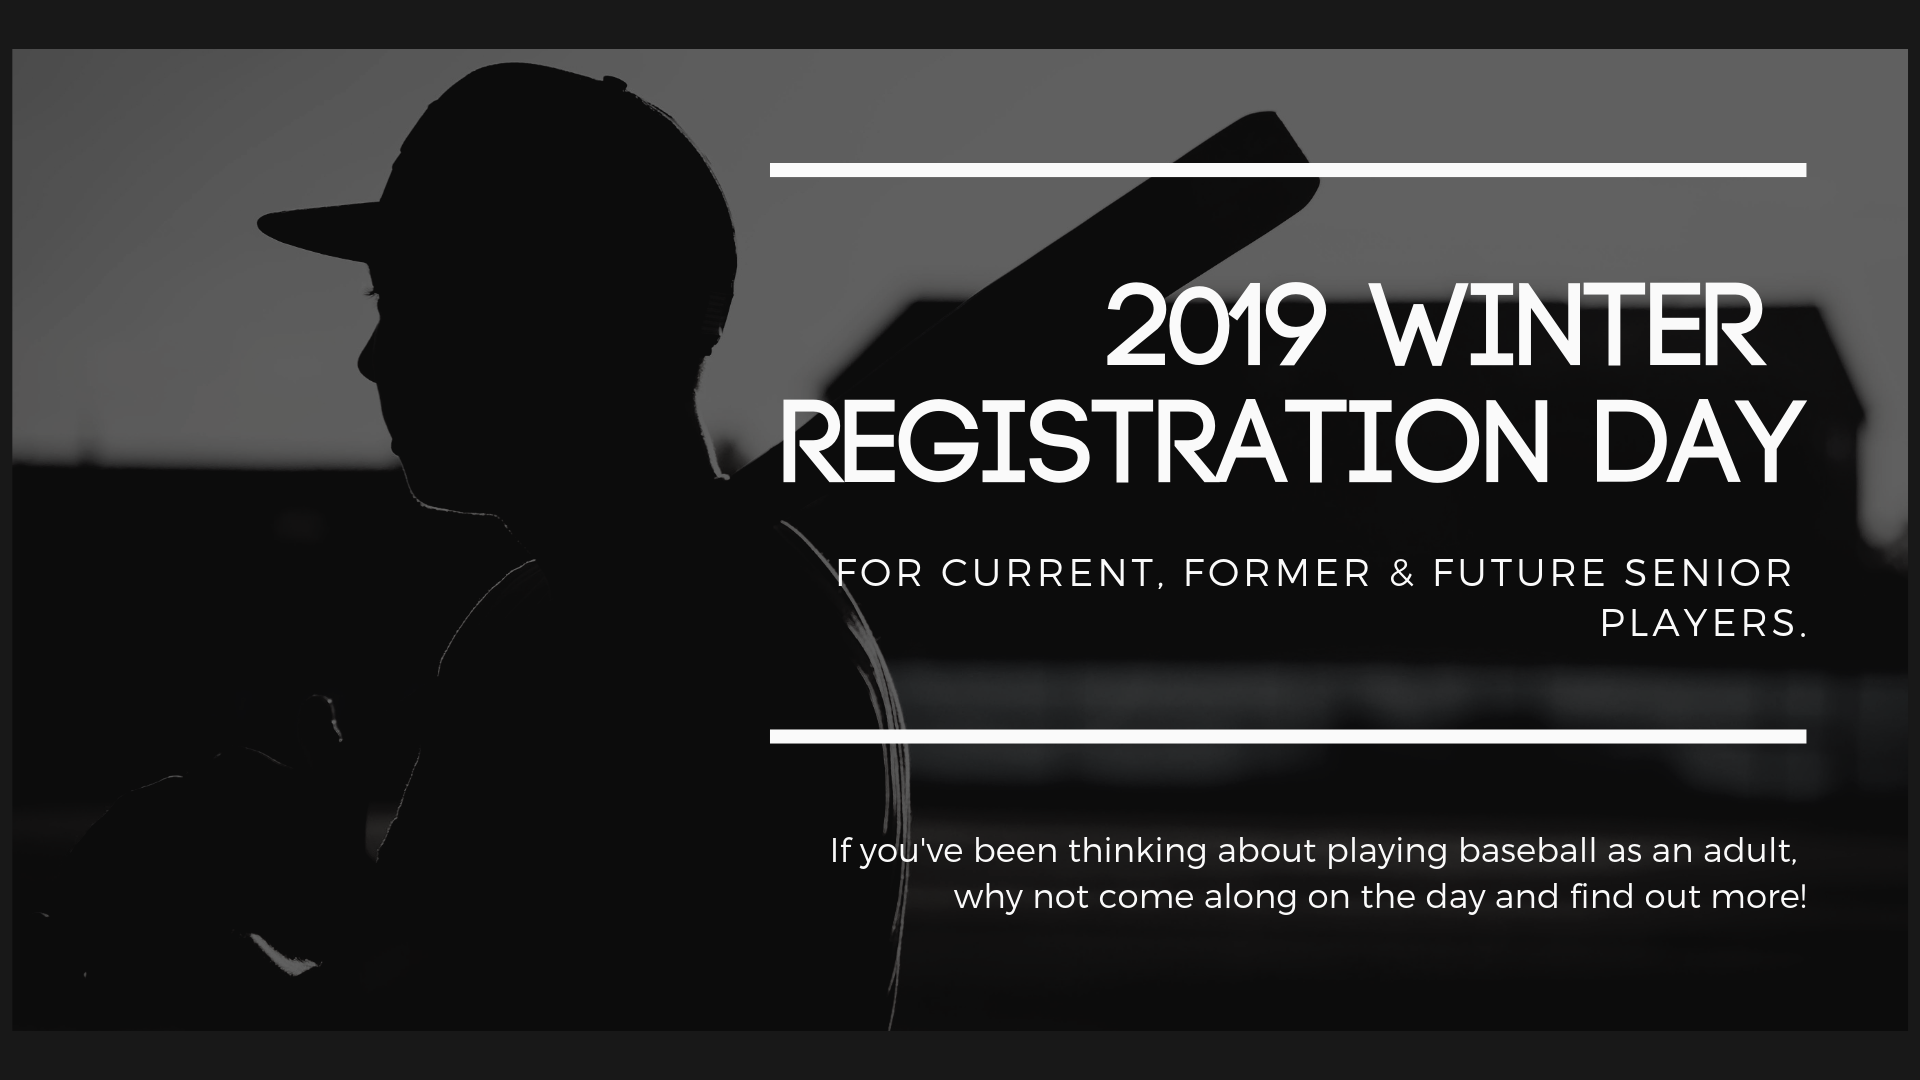 2019 winter registration day